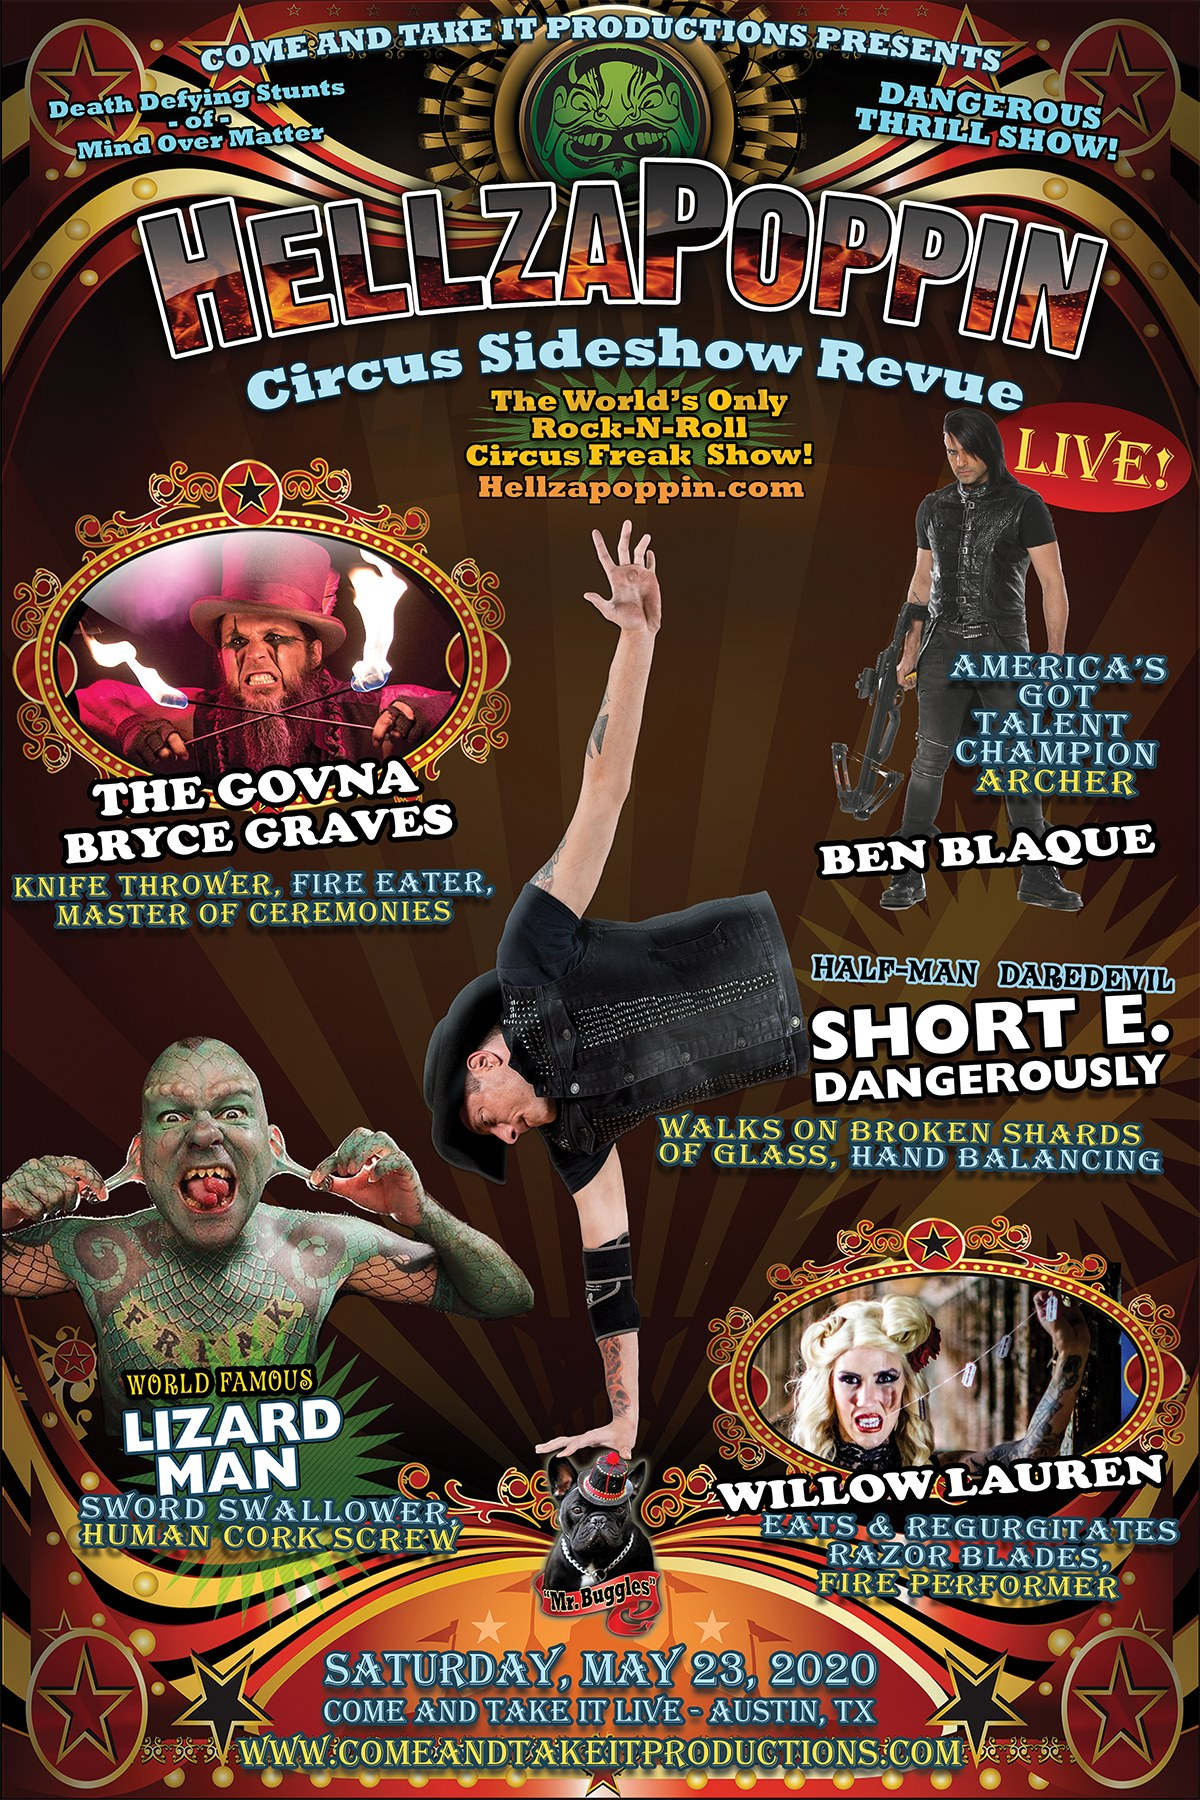 Hellzapoppin Circus Sideshow Review